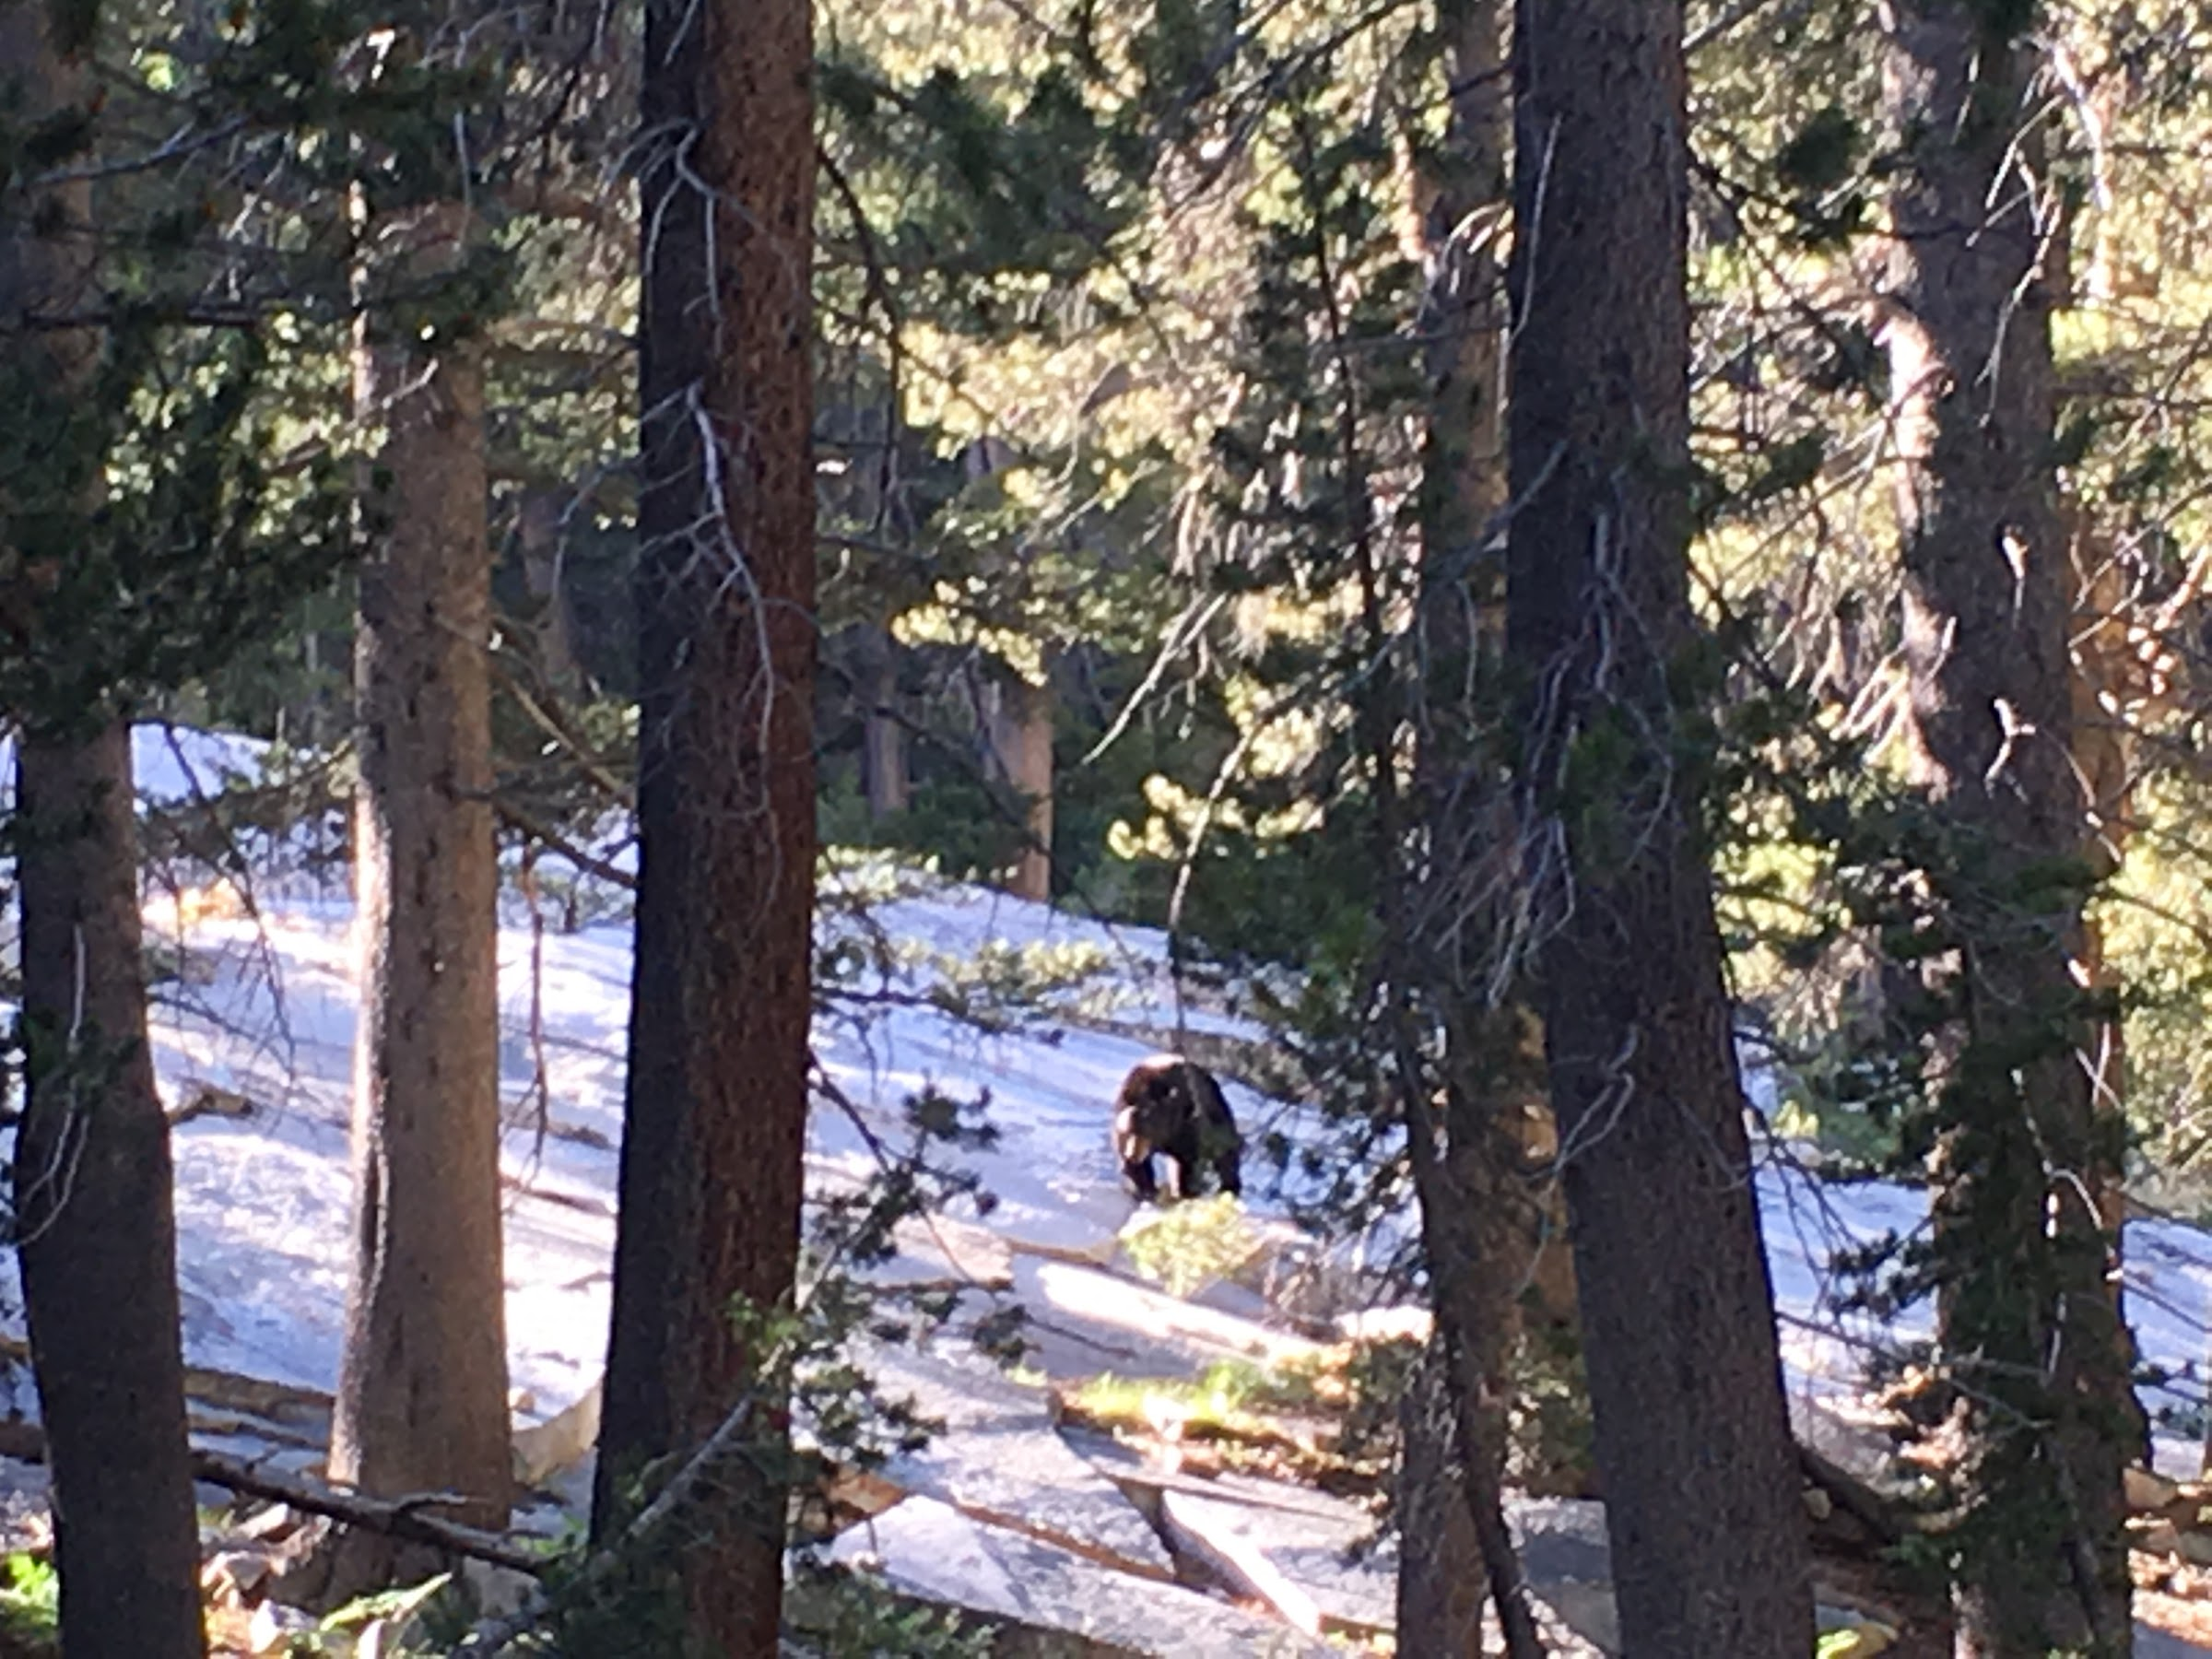 Morning bear sighting